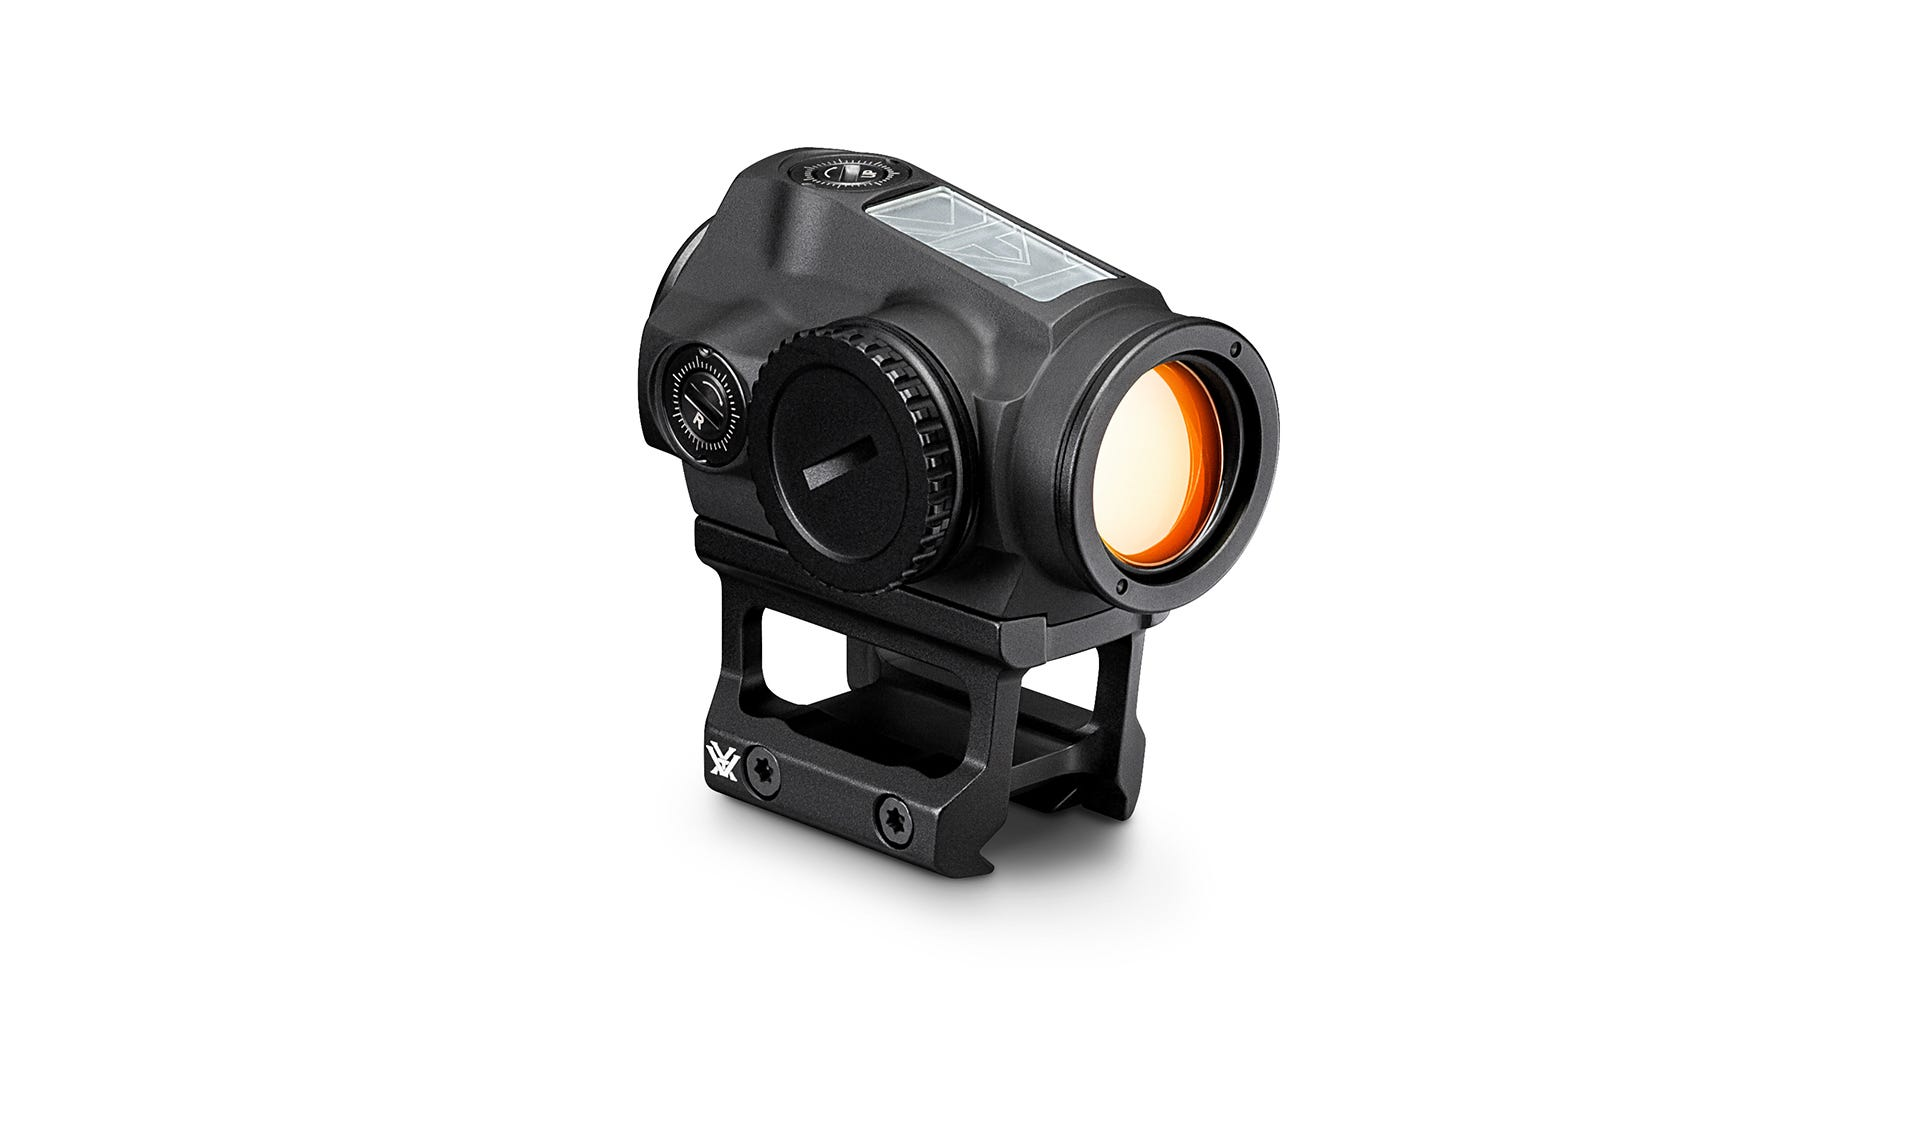 The VORTEX Sparc Solar Red Dot SPC-404 harnesses the power of the sun for up to 150,000 hours of battery life. Auto D-TEC technology